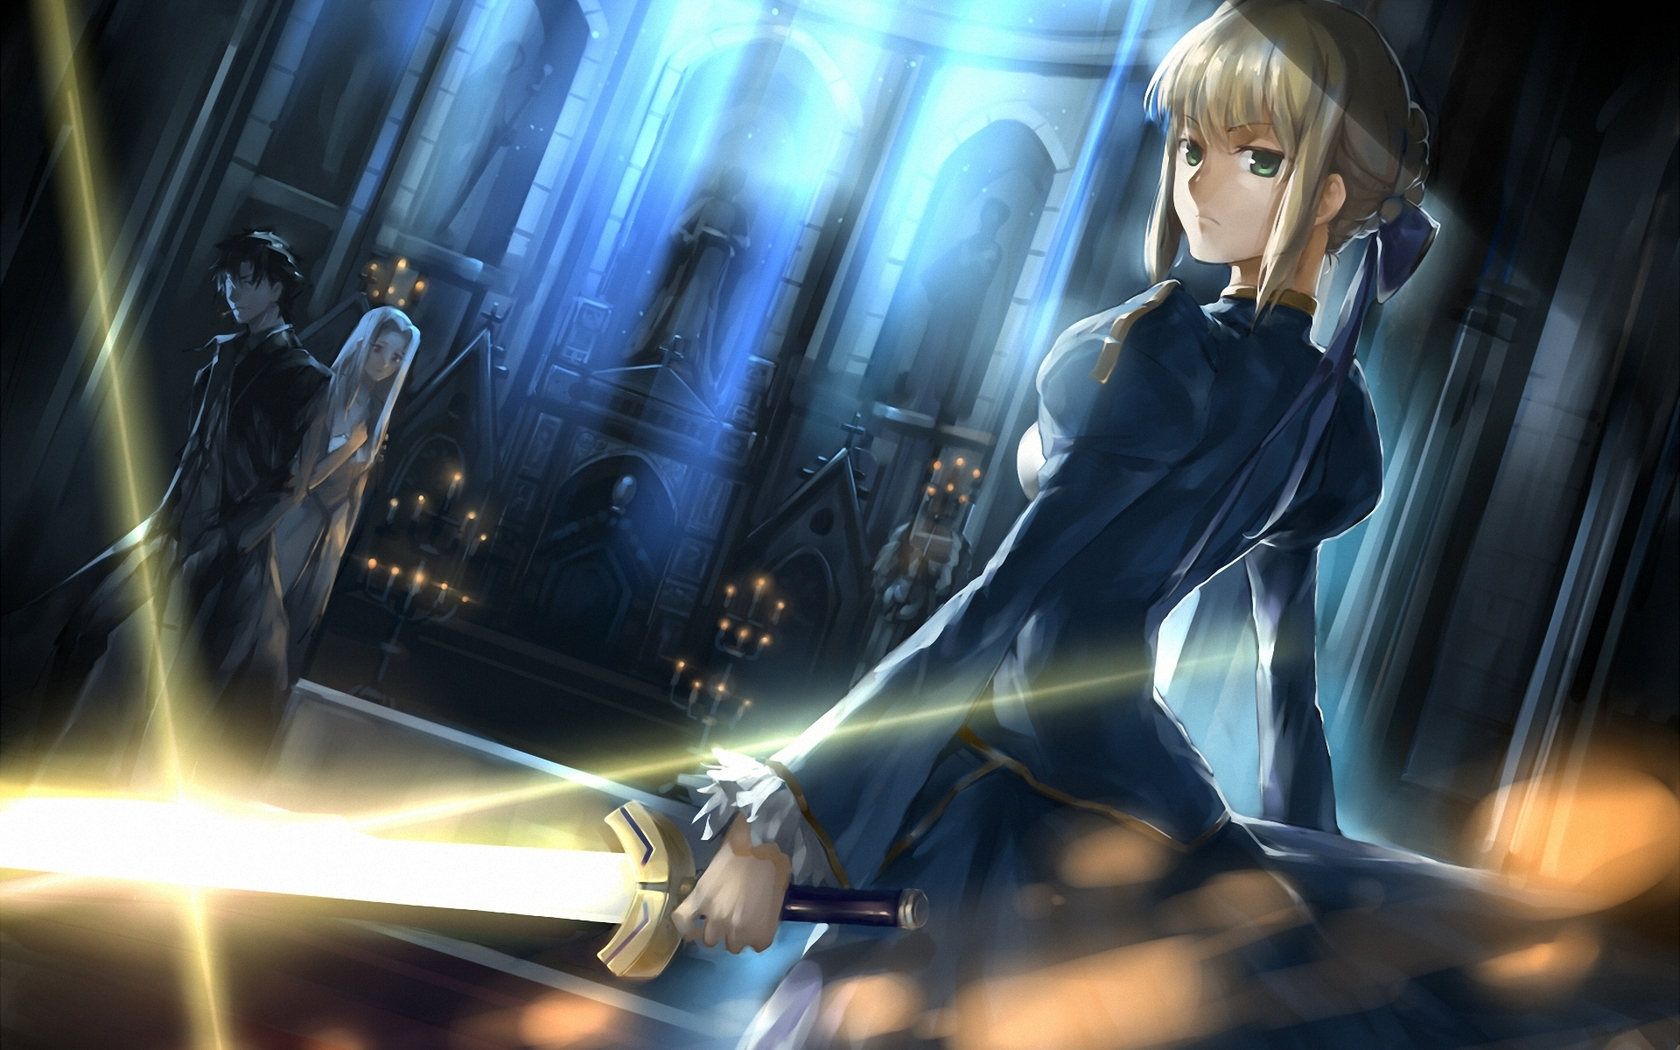 Fate Zero Saber Wallpaper hd Fate Zero Stay Night Saber 1680x1050